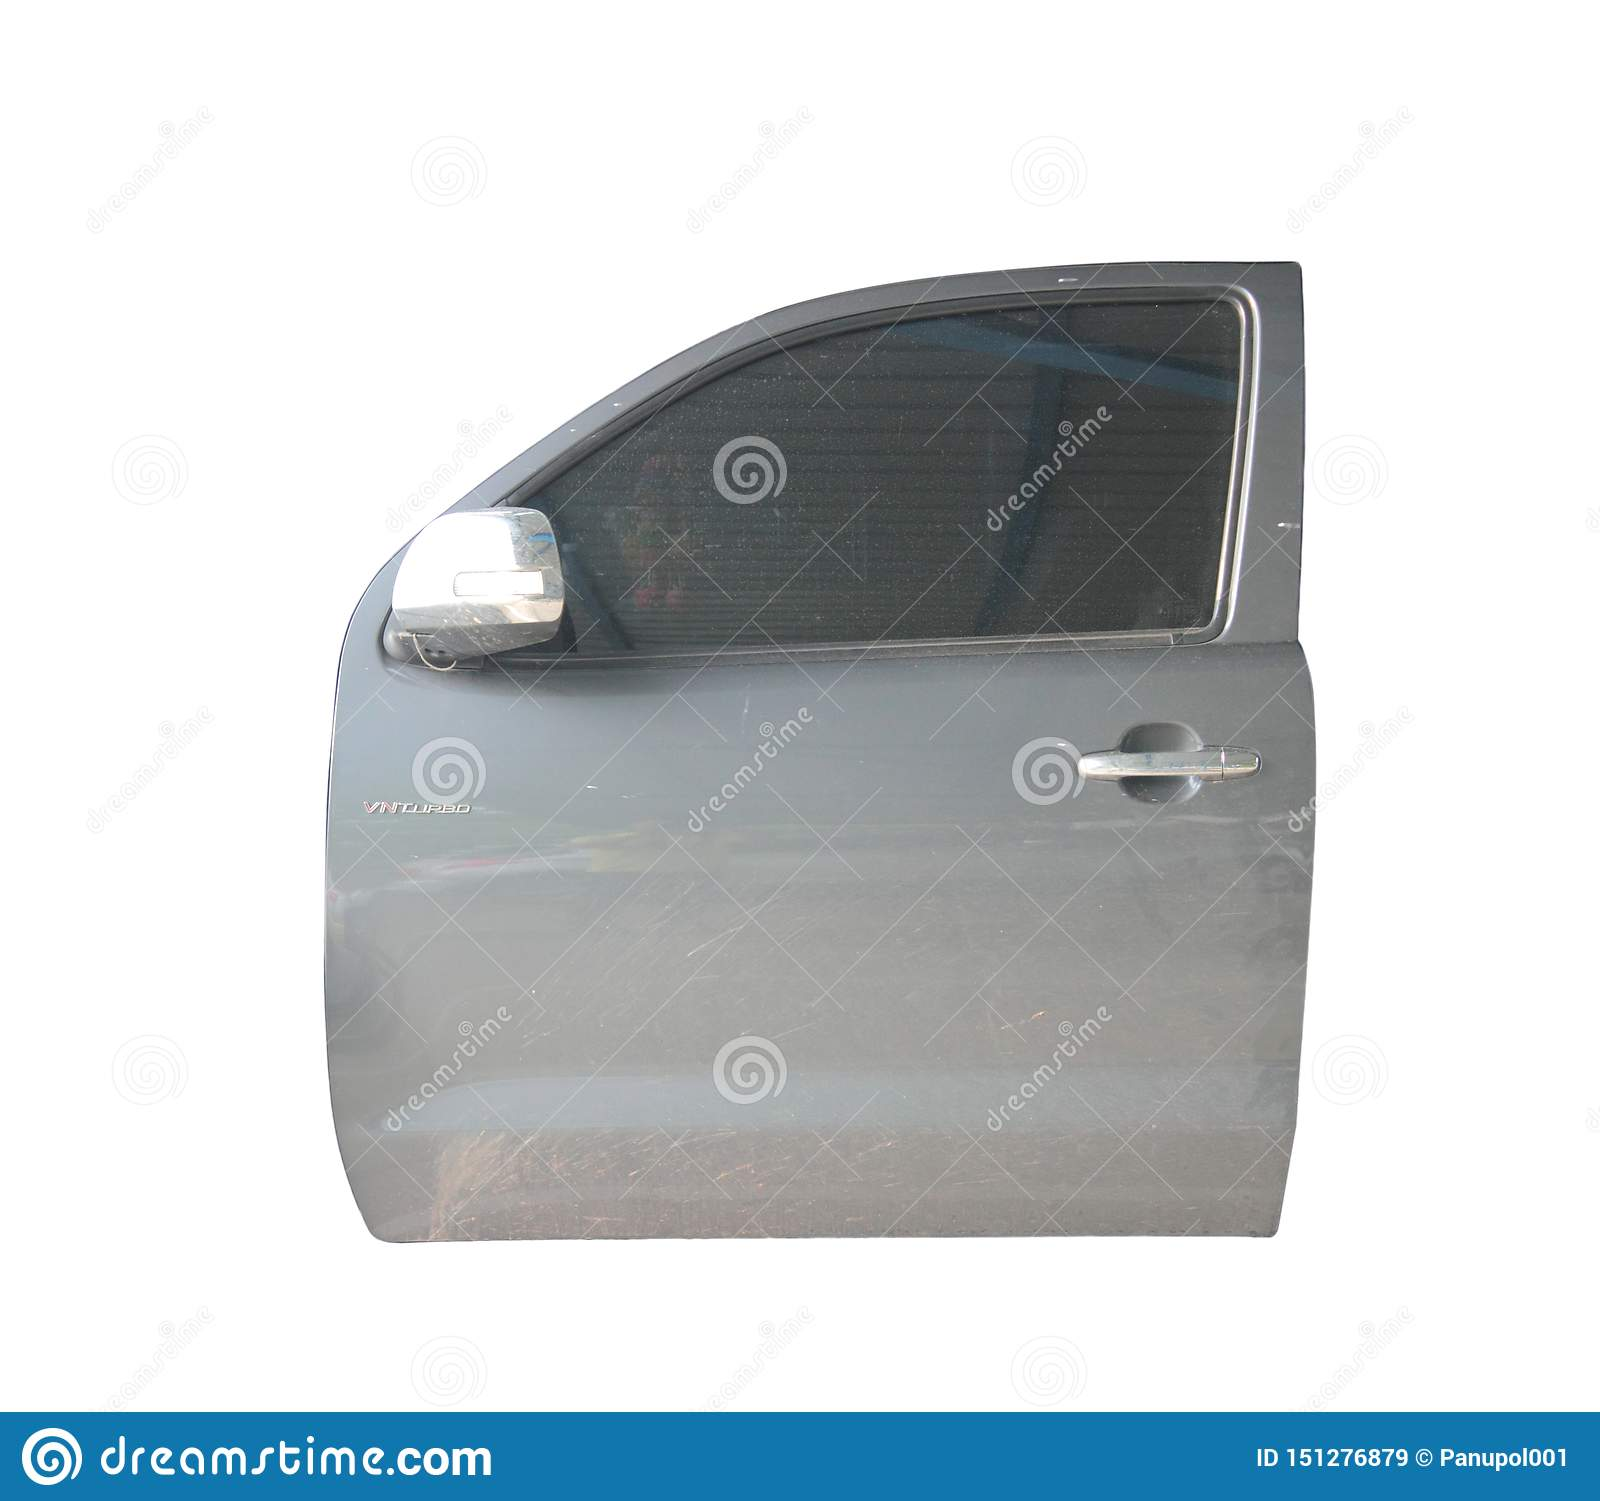 Pickup truck door on isolated background